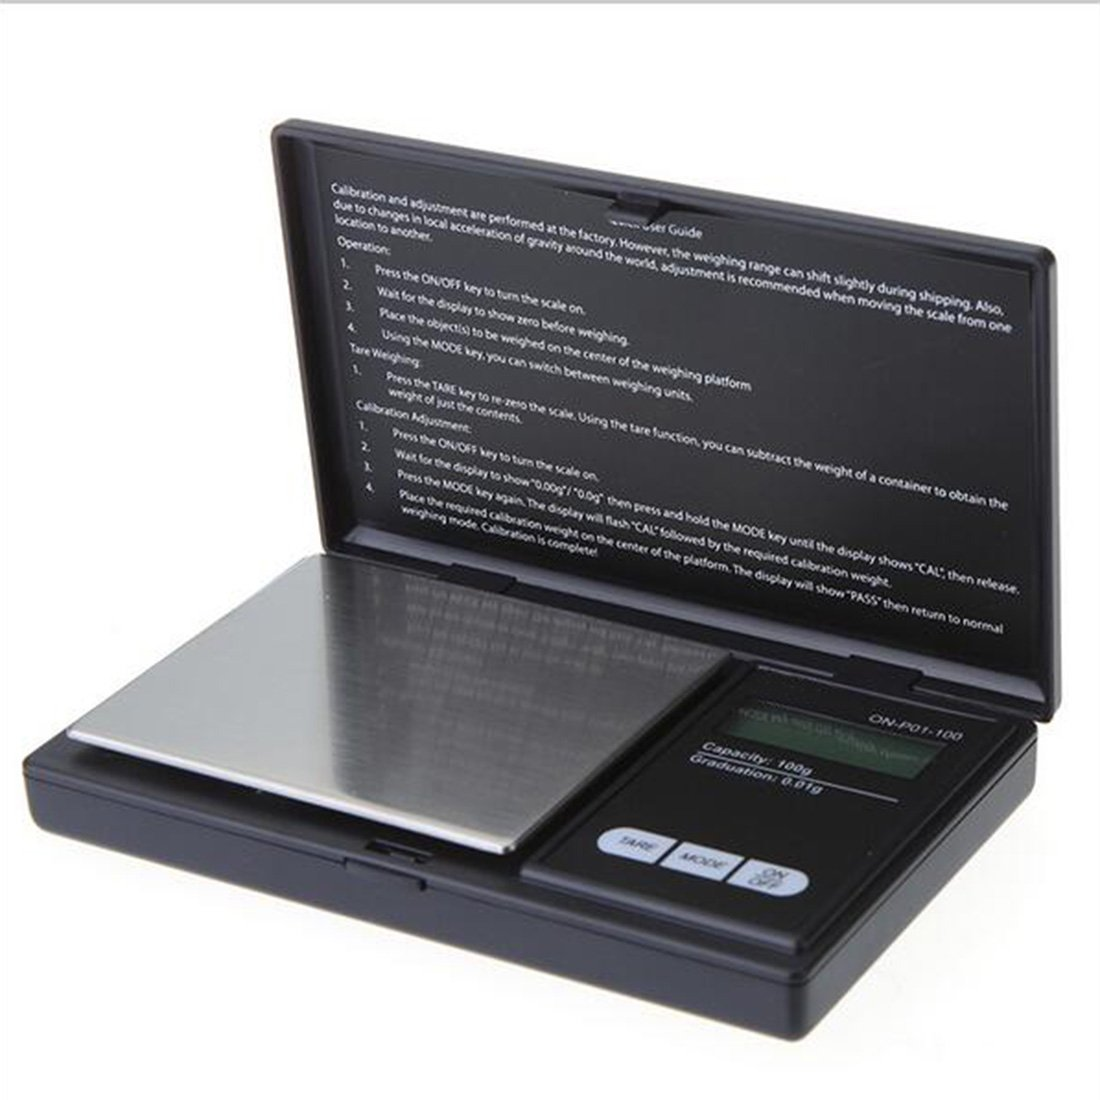 100g/0.01g Mini Digital Pocket Precision Scale Jewelry Scale Electronic LCD Scale Clamshell, Light and portable Luwu-Store